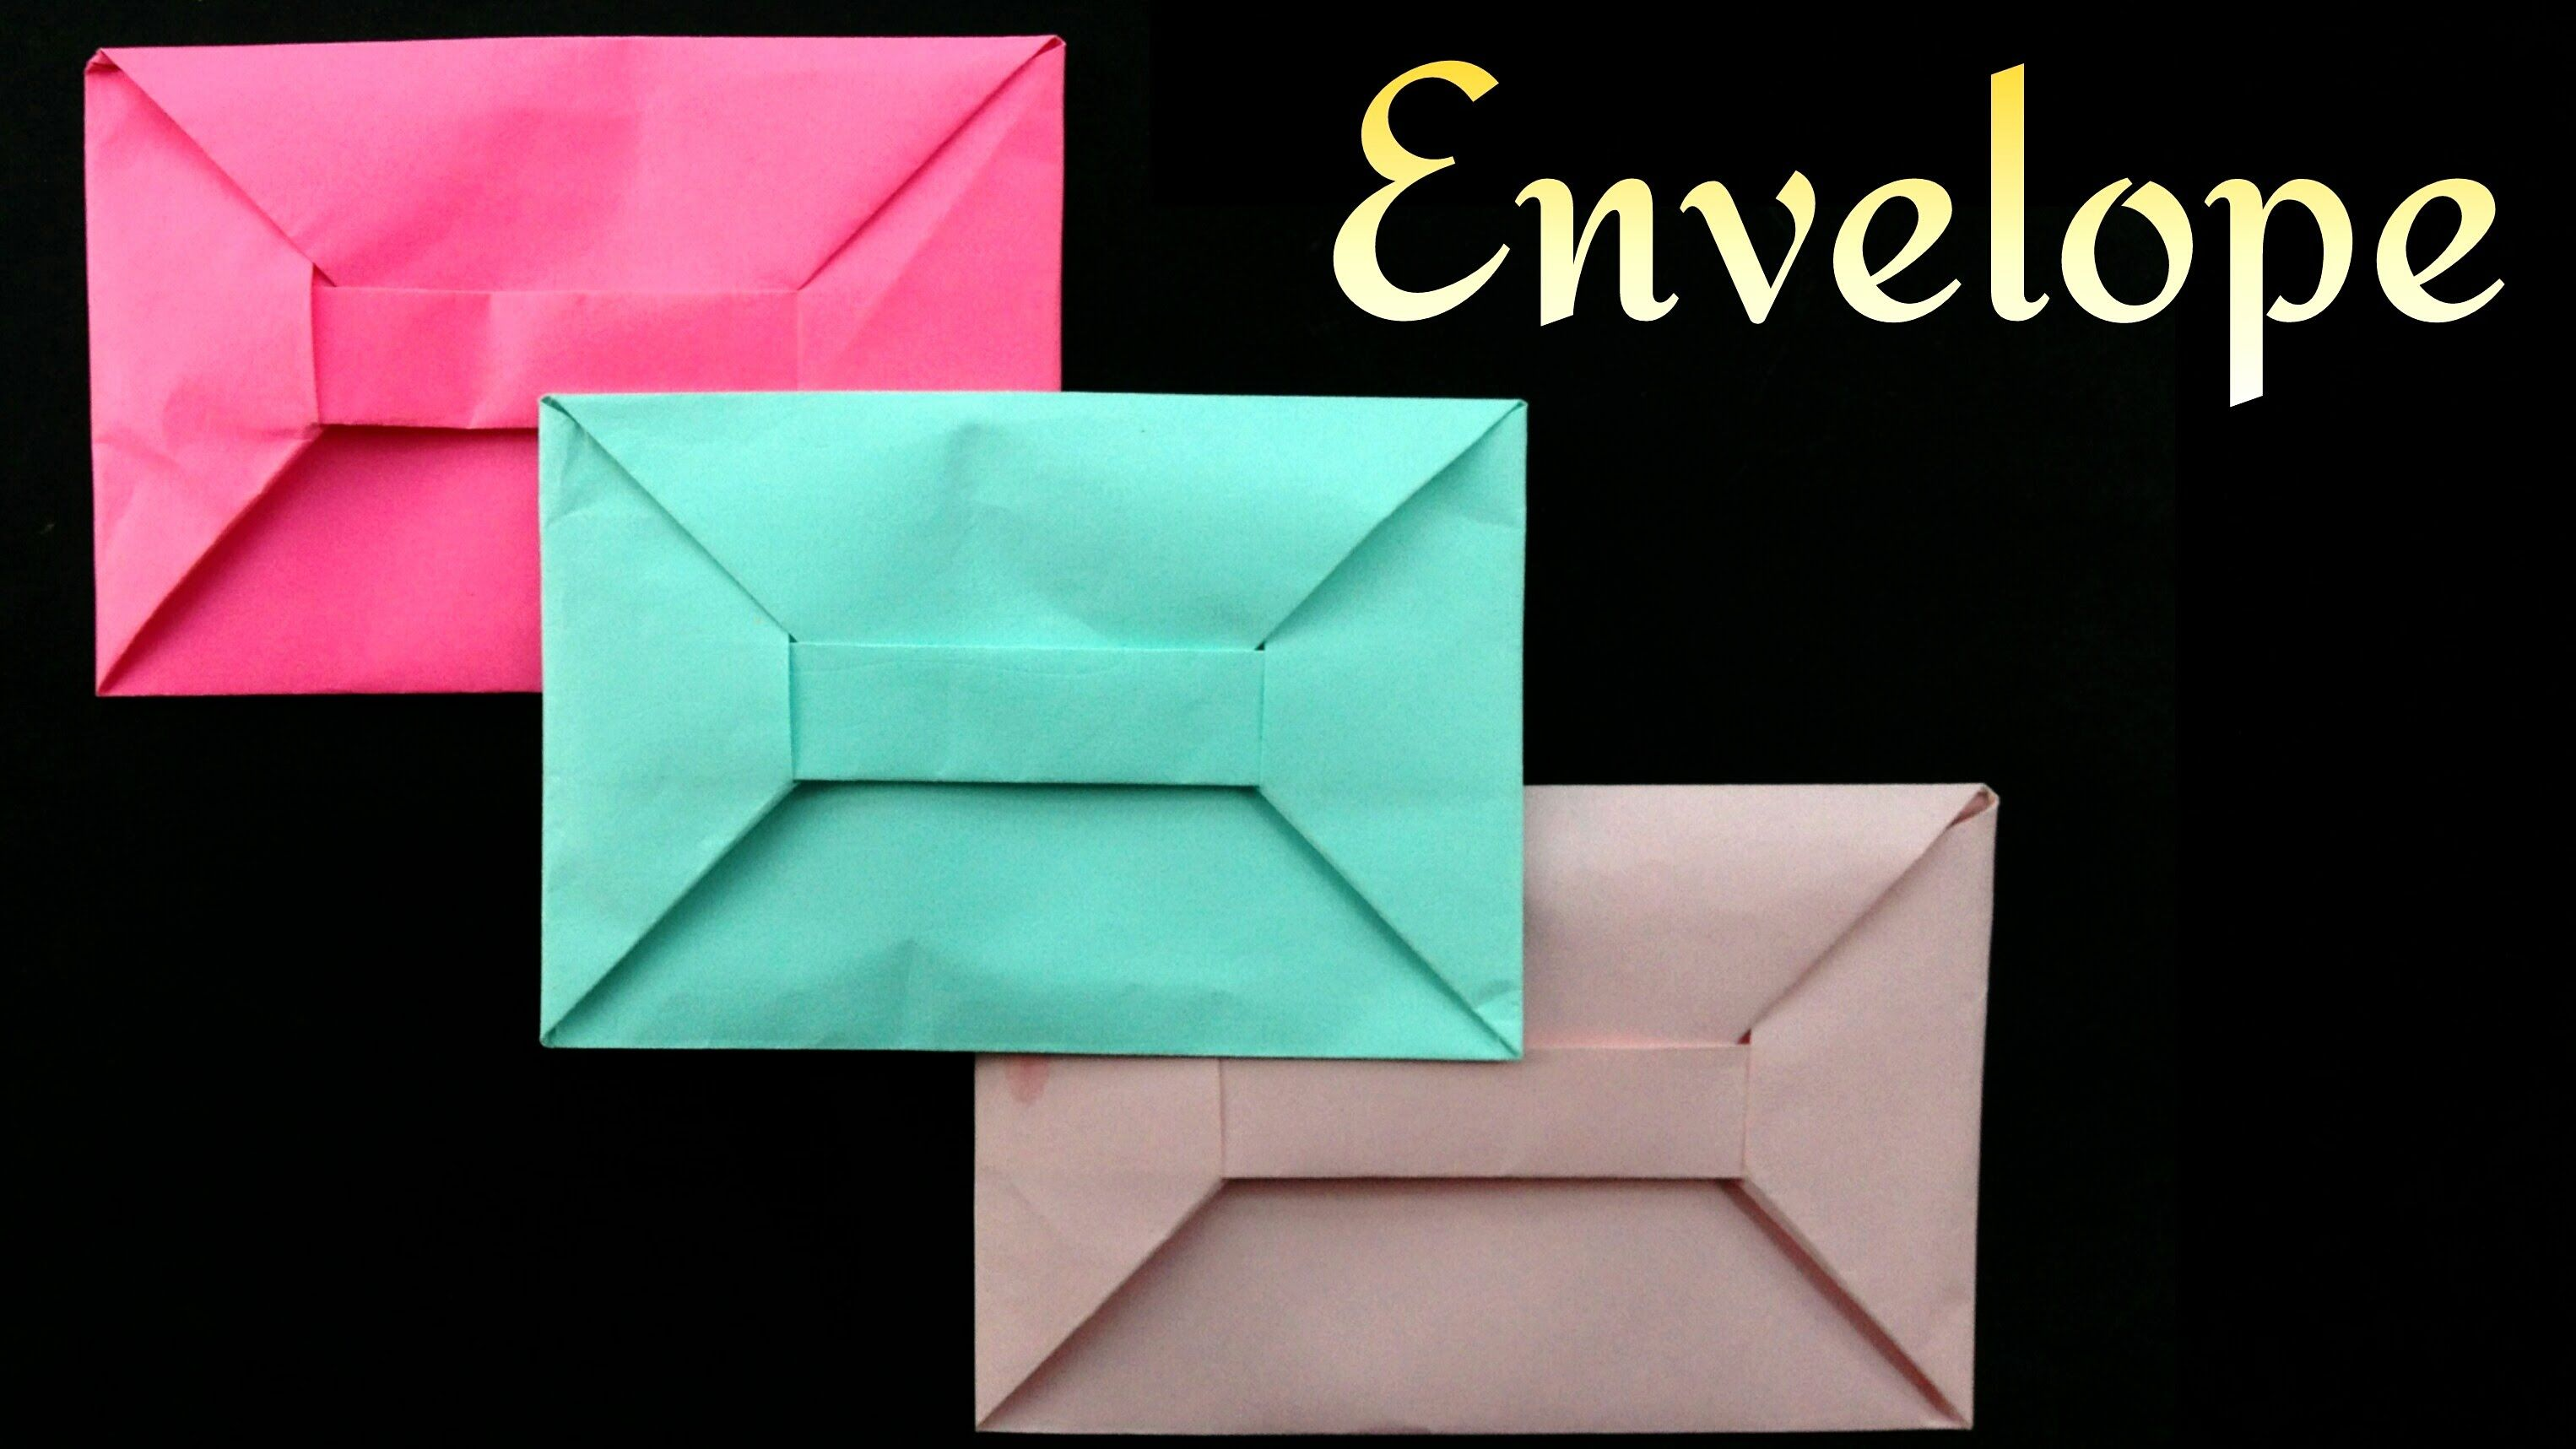 Envelope From A4 Sheet No Glue Or Tape Diy Origami Tutorial By